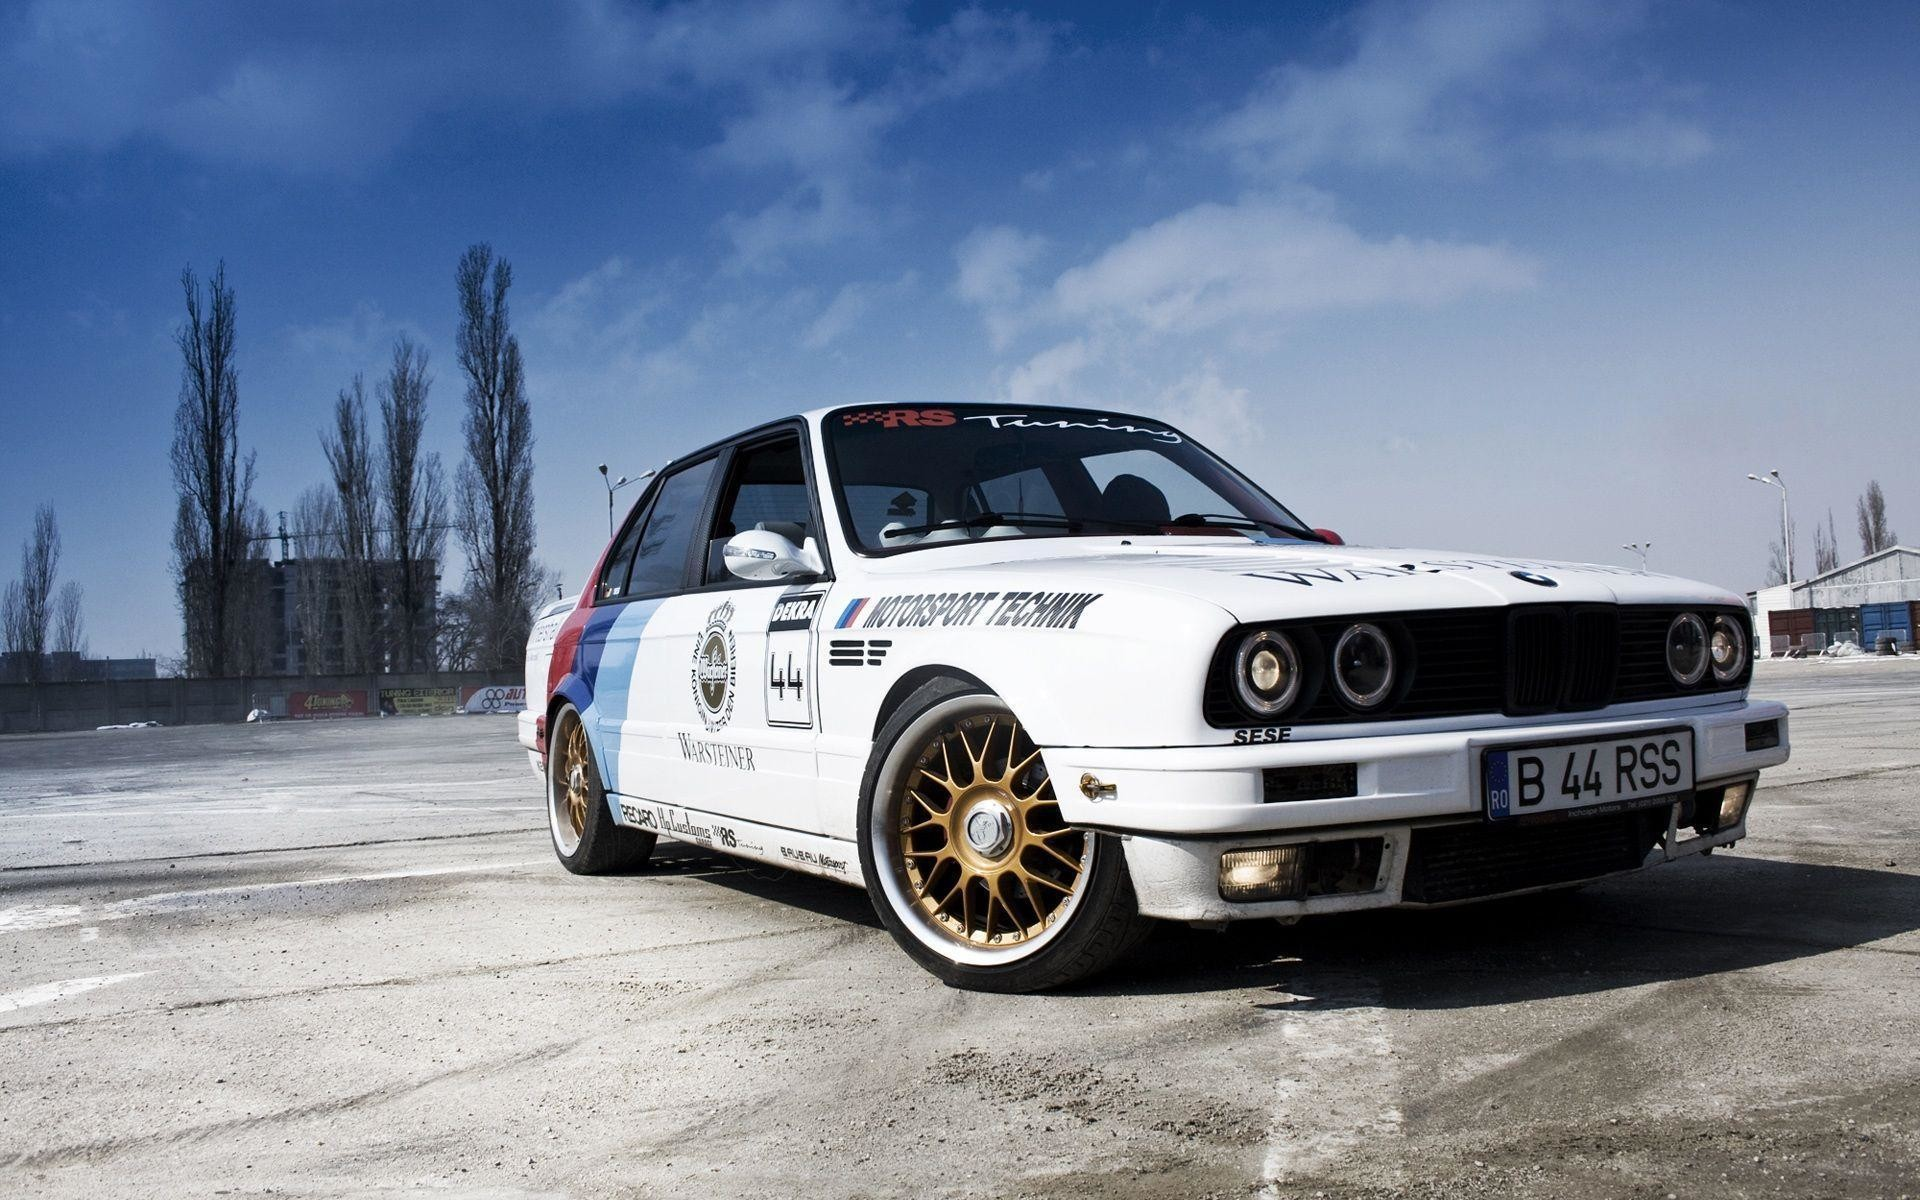 Res: 1920x1200, Bmw E30 Wallpapers Wallpaper Cave 3 Series Convertible